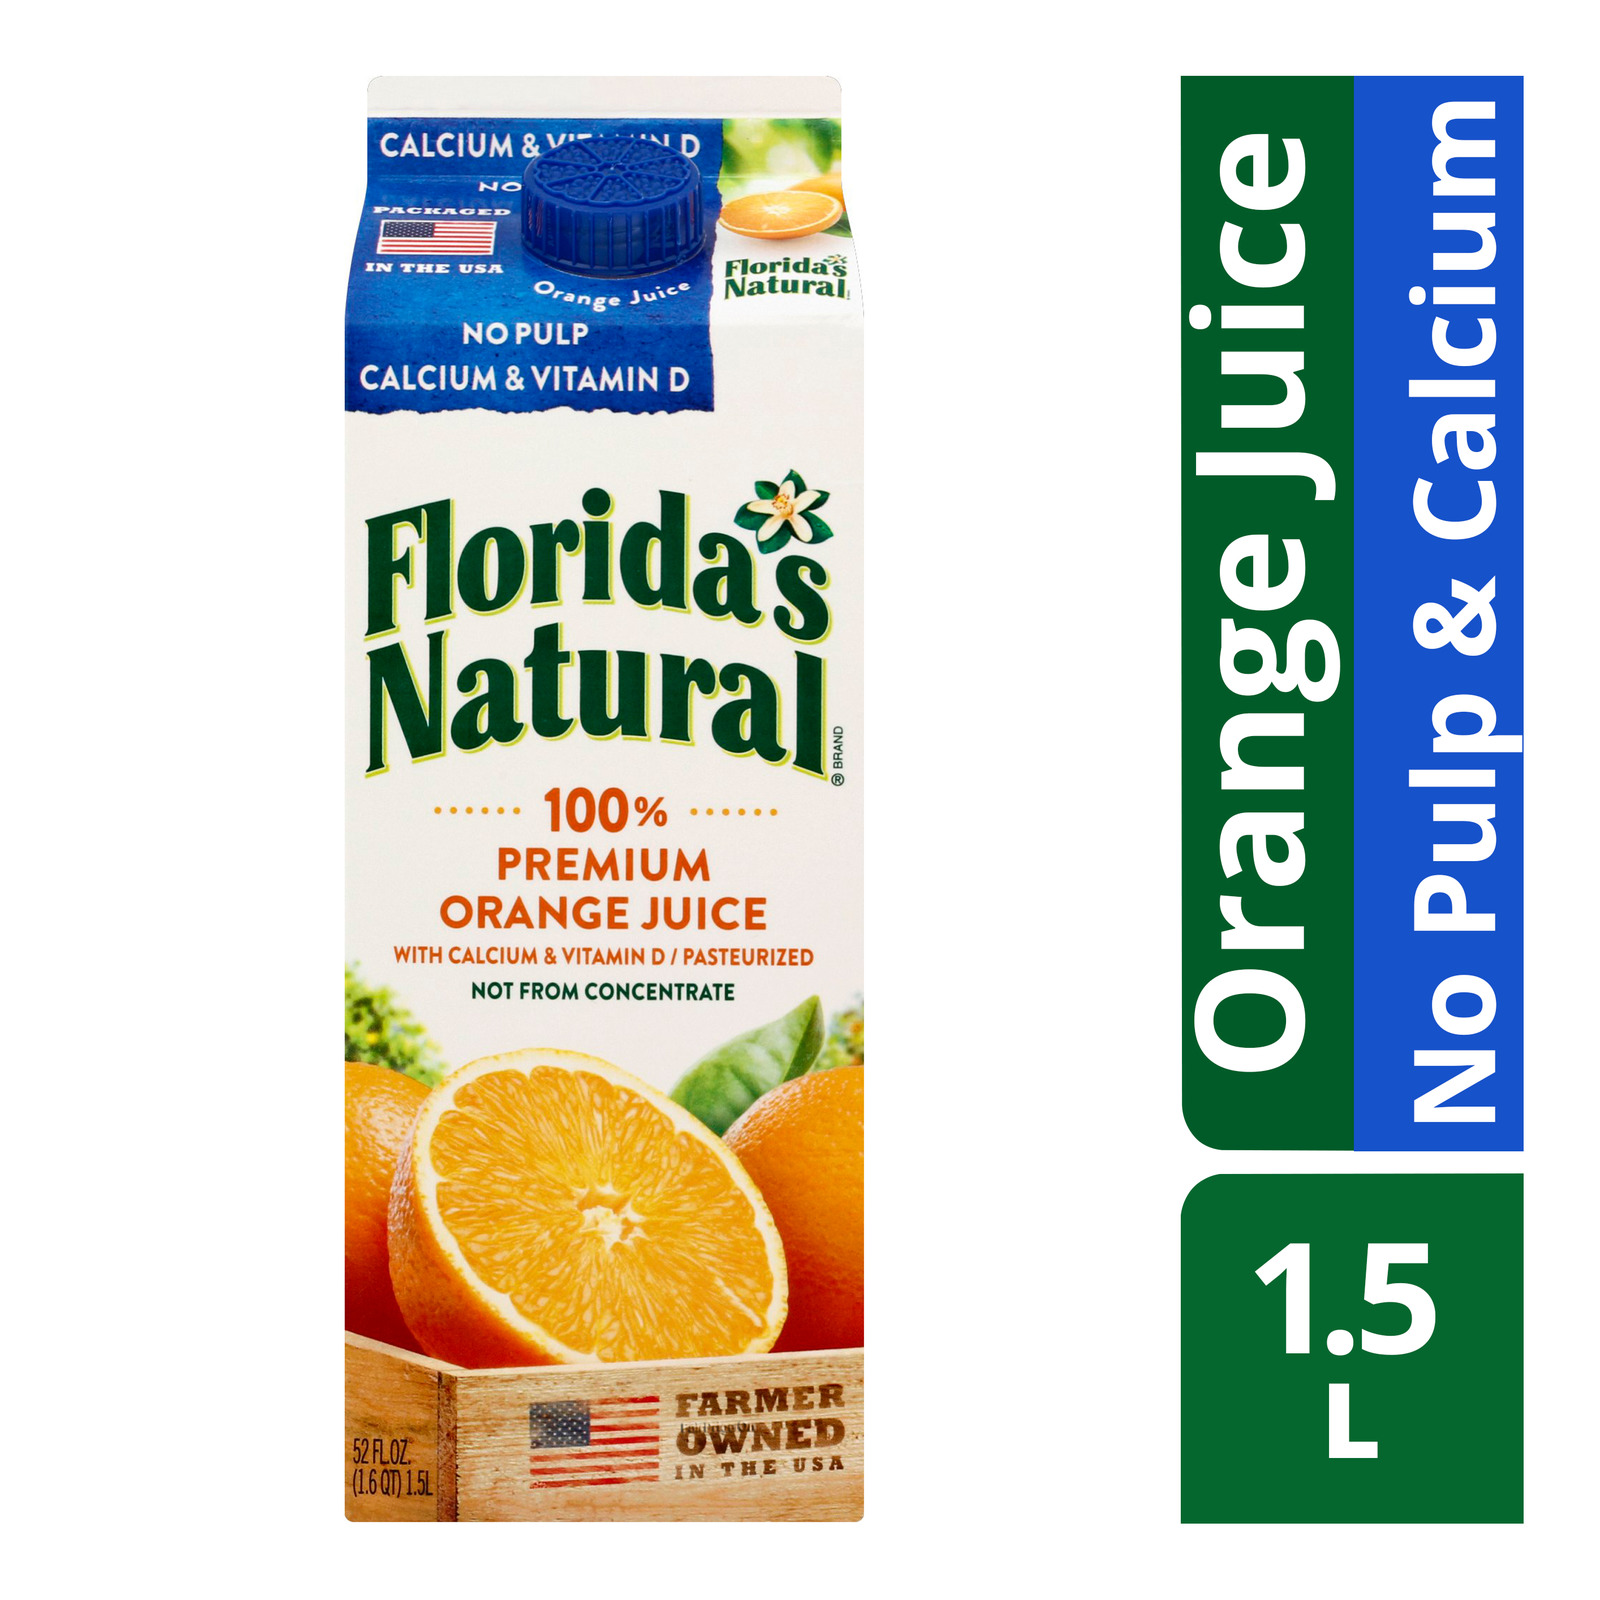 Florida's Natural 100% Orange Juice - No Pulp & Calcium